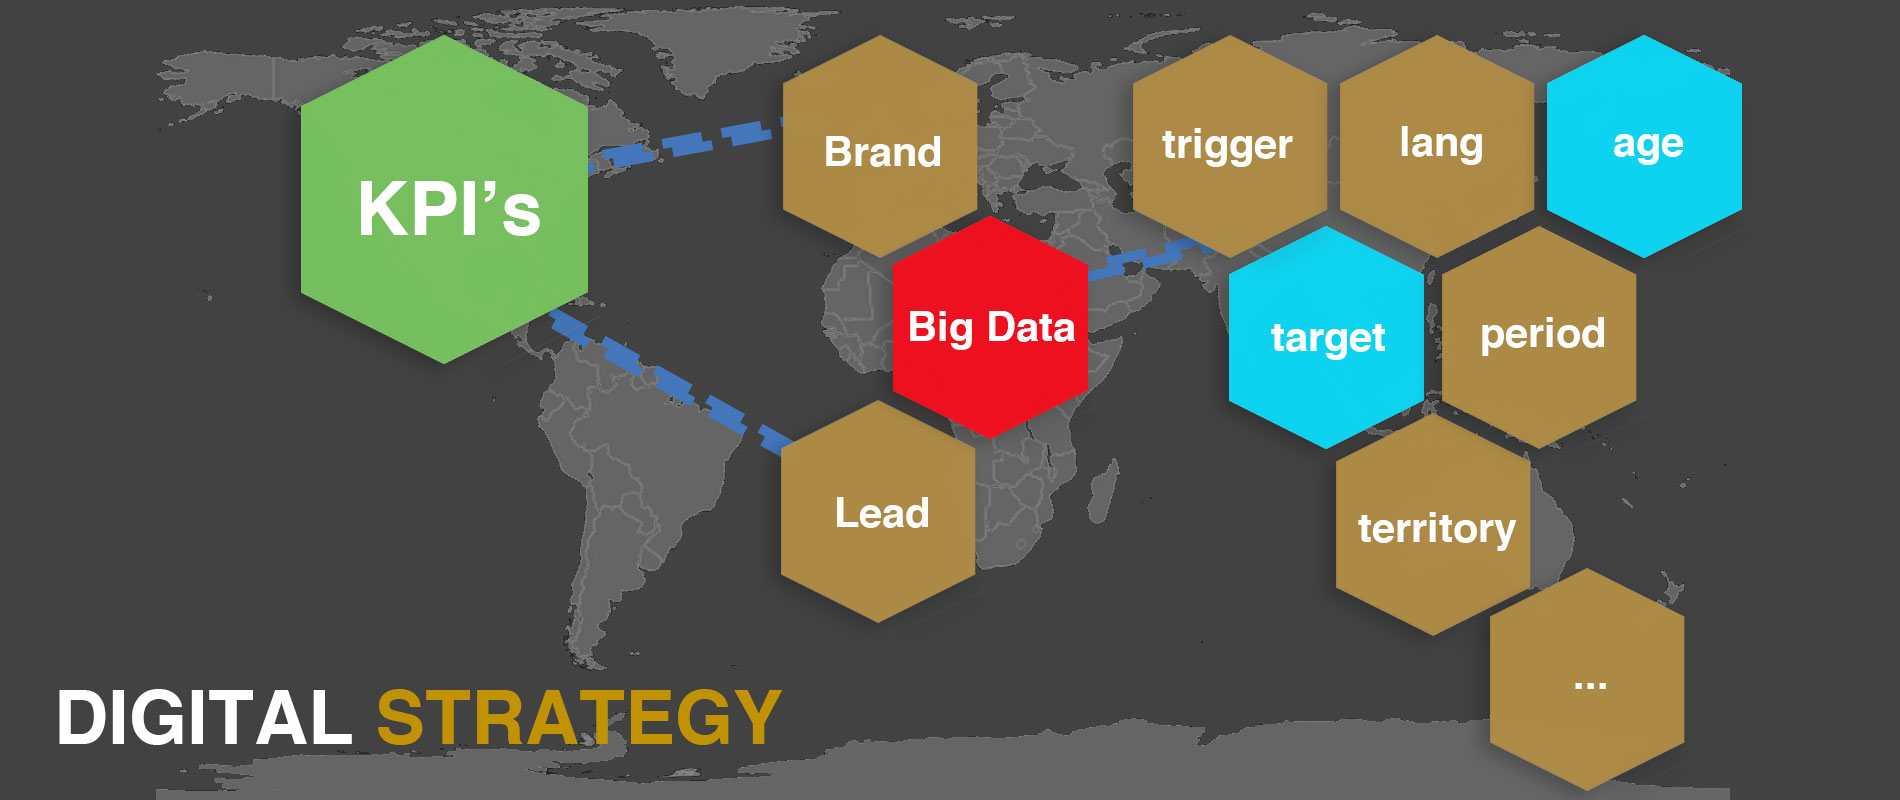 Digital Marketing with the right Digital Strategy